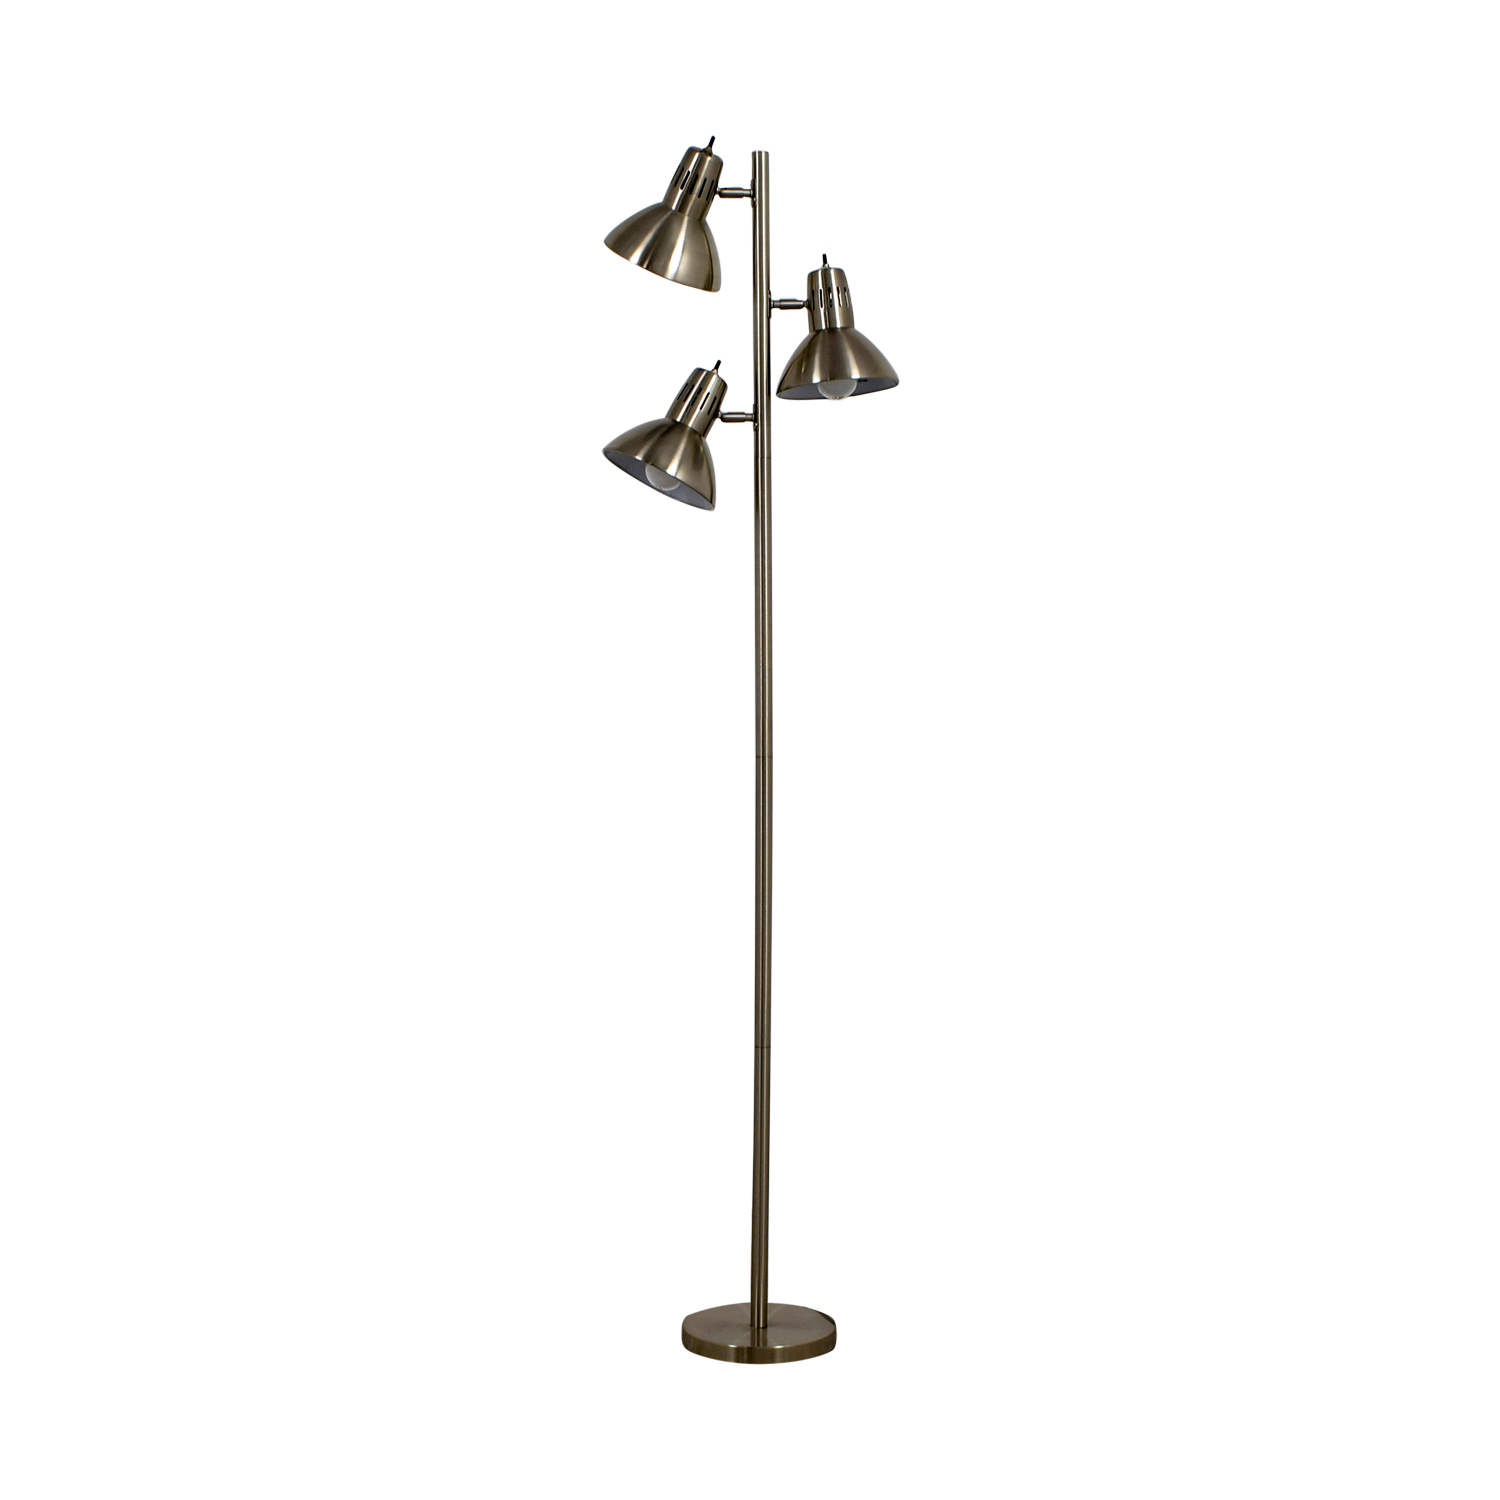 Lamps: Used Lamps for sale